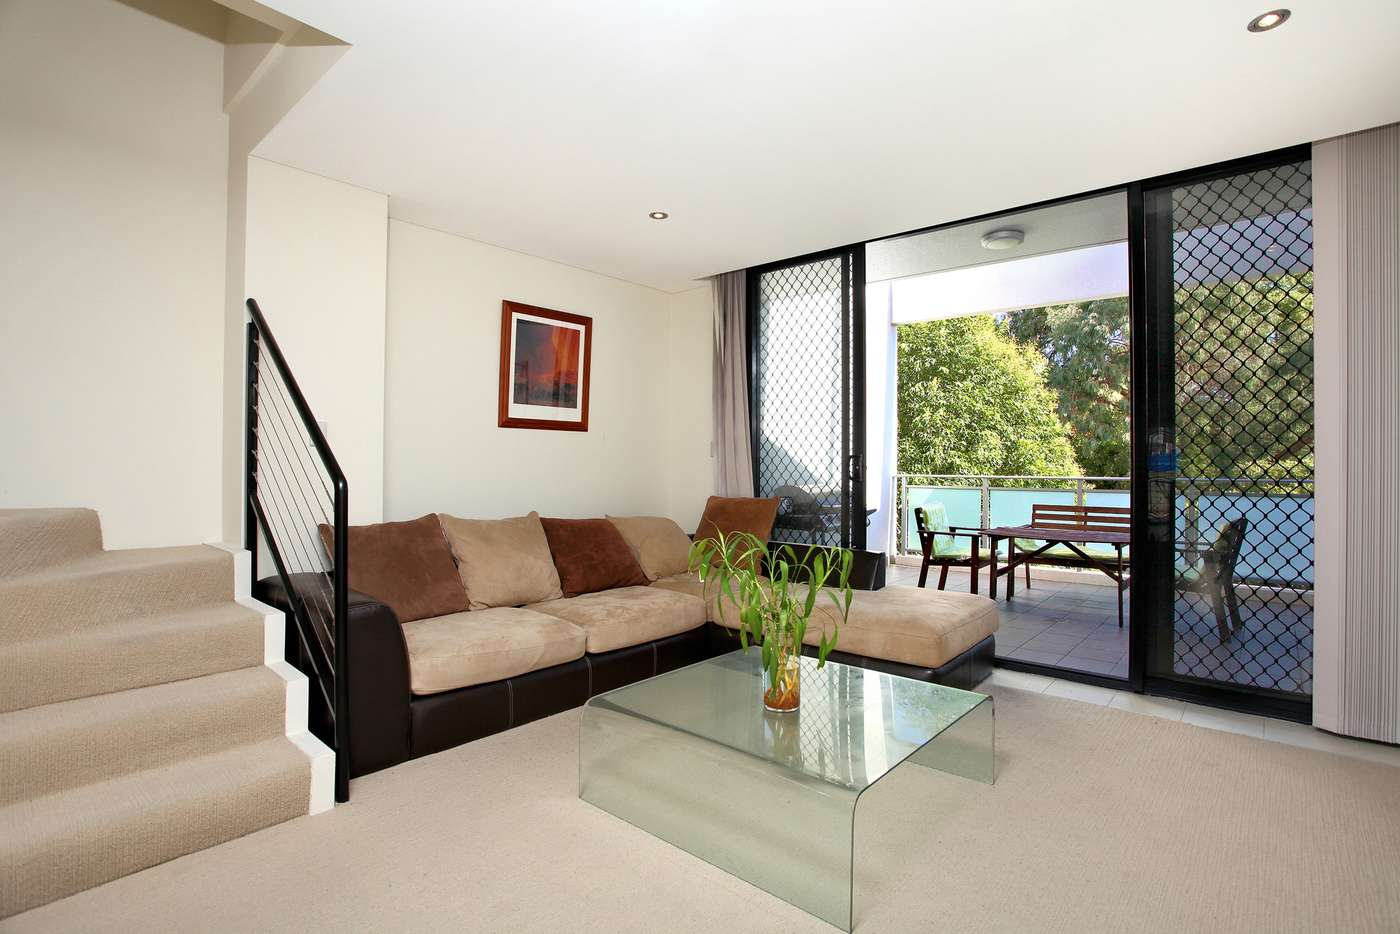 Main view of Homely apartment listing, Unit 37/56-58 Powell St, Homebush, NSW 2140